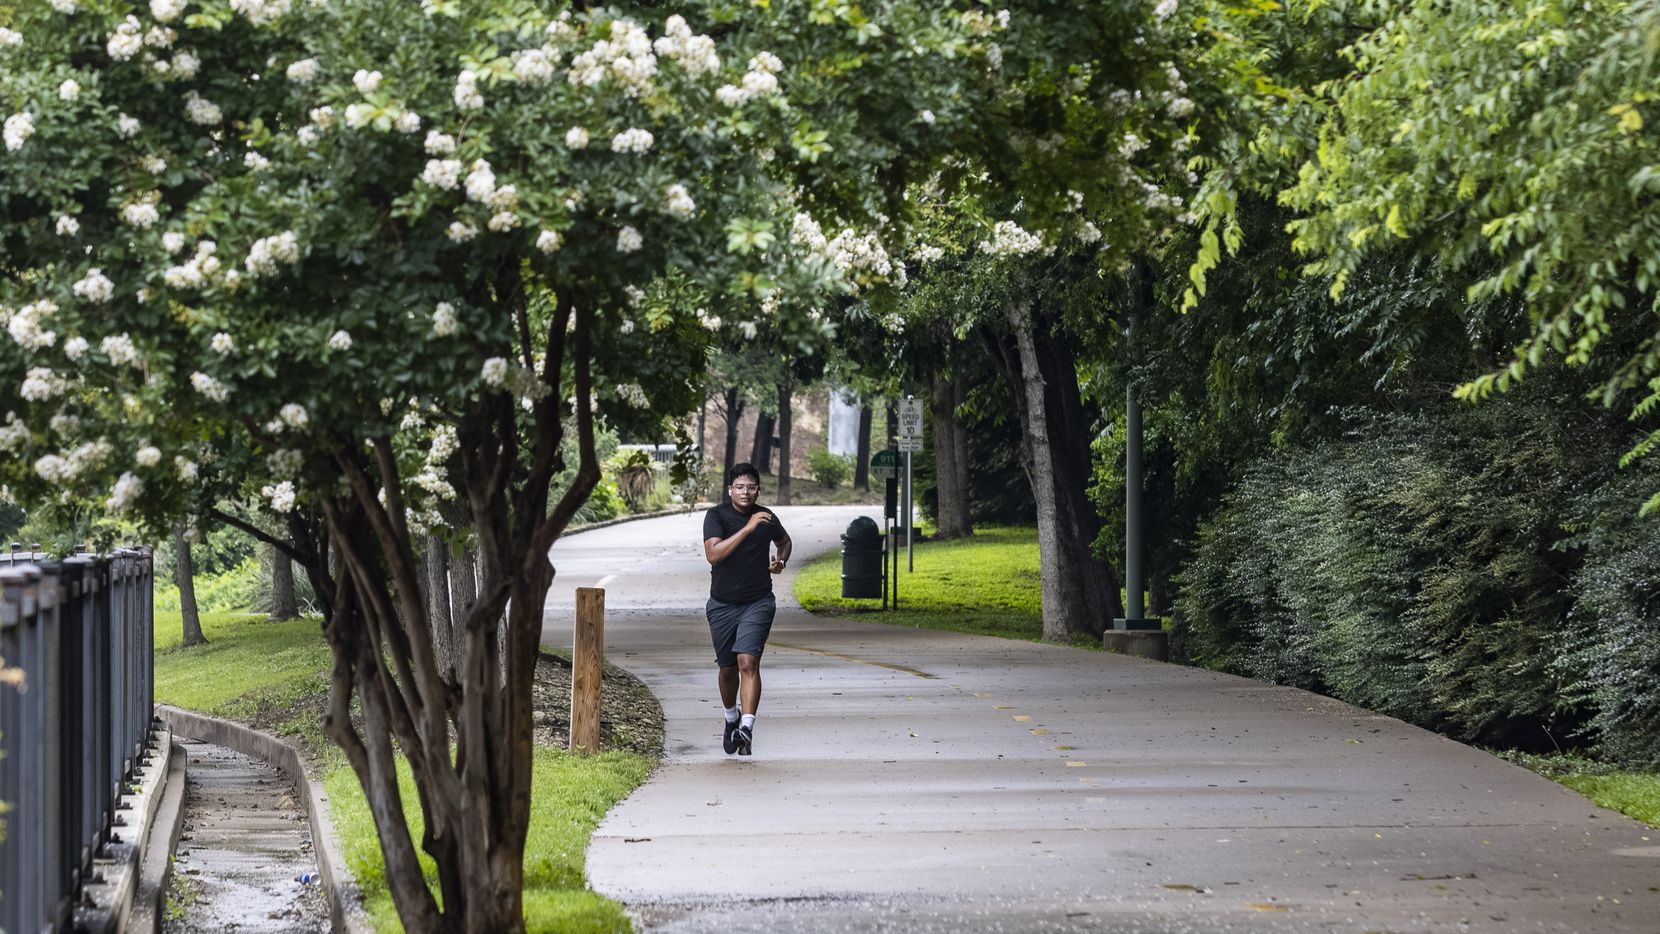 A man runs on the Katy Trail during a misty afternoon in Dallas on Friday, June 4, 2021. Mesquite is seeking resident input on its own parks and recreation facilities.